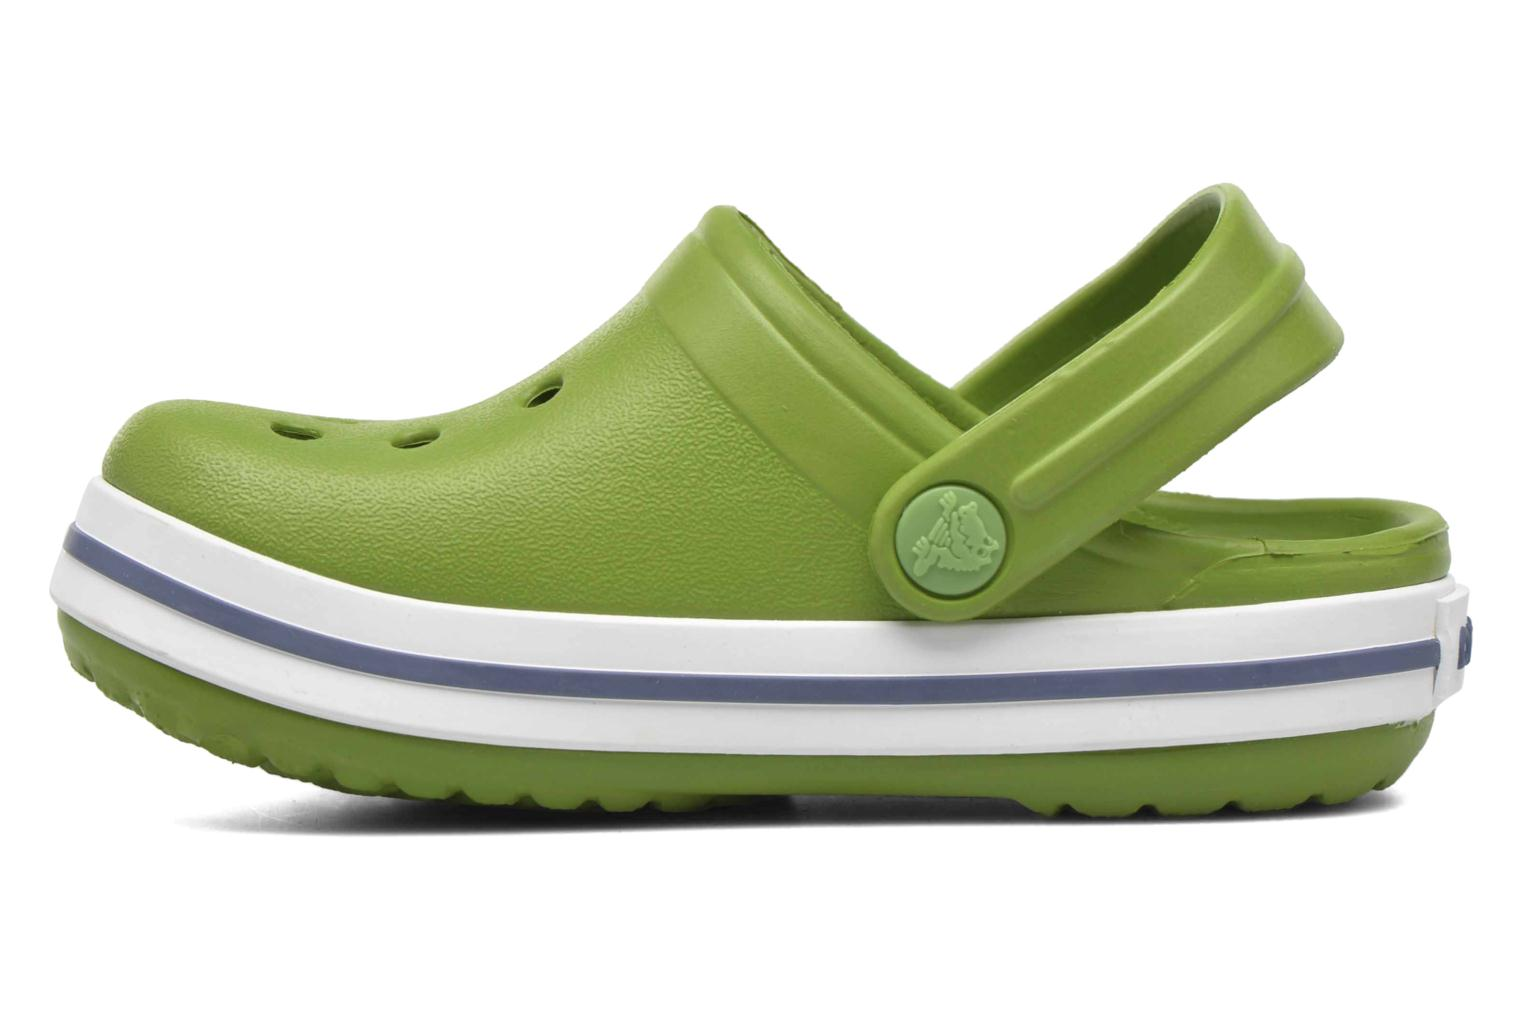 Crocband kids Parrot Green/White